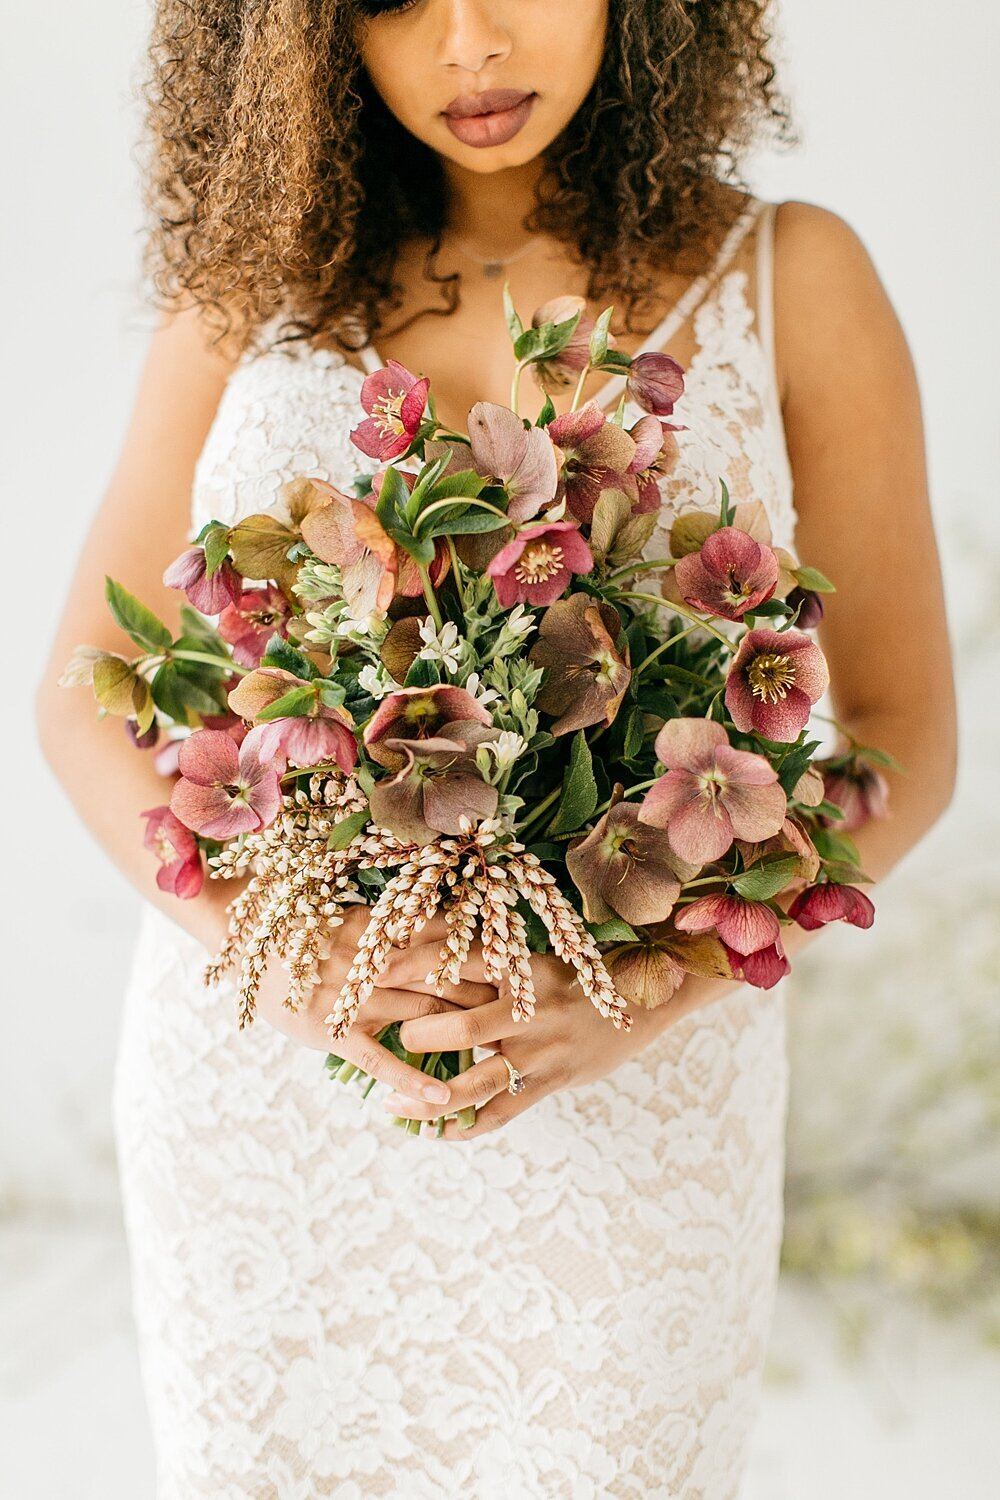 leigh-and-mitchell-spring-bridal-shoot-pink-and-mauve-modern-bridal-bouquet